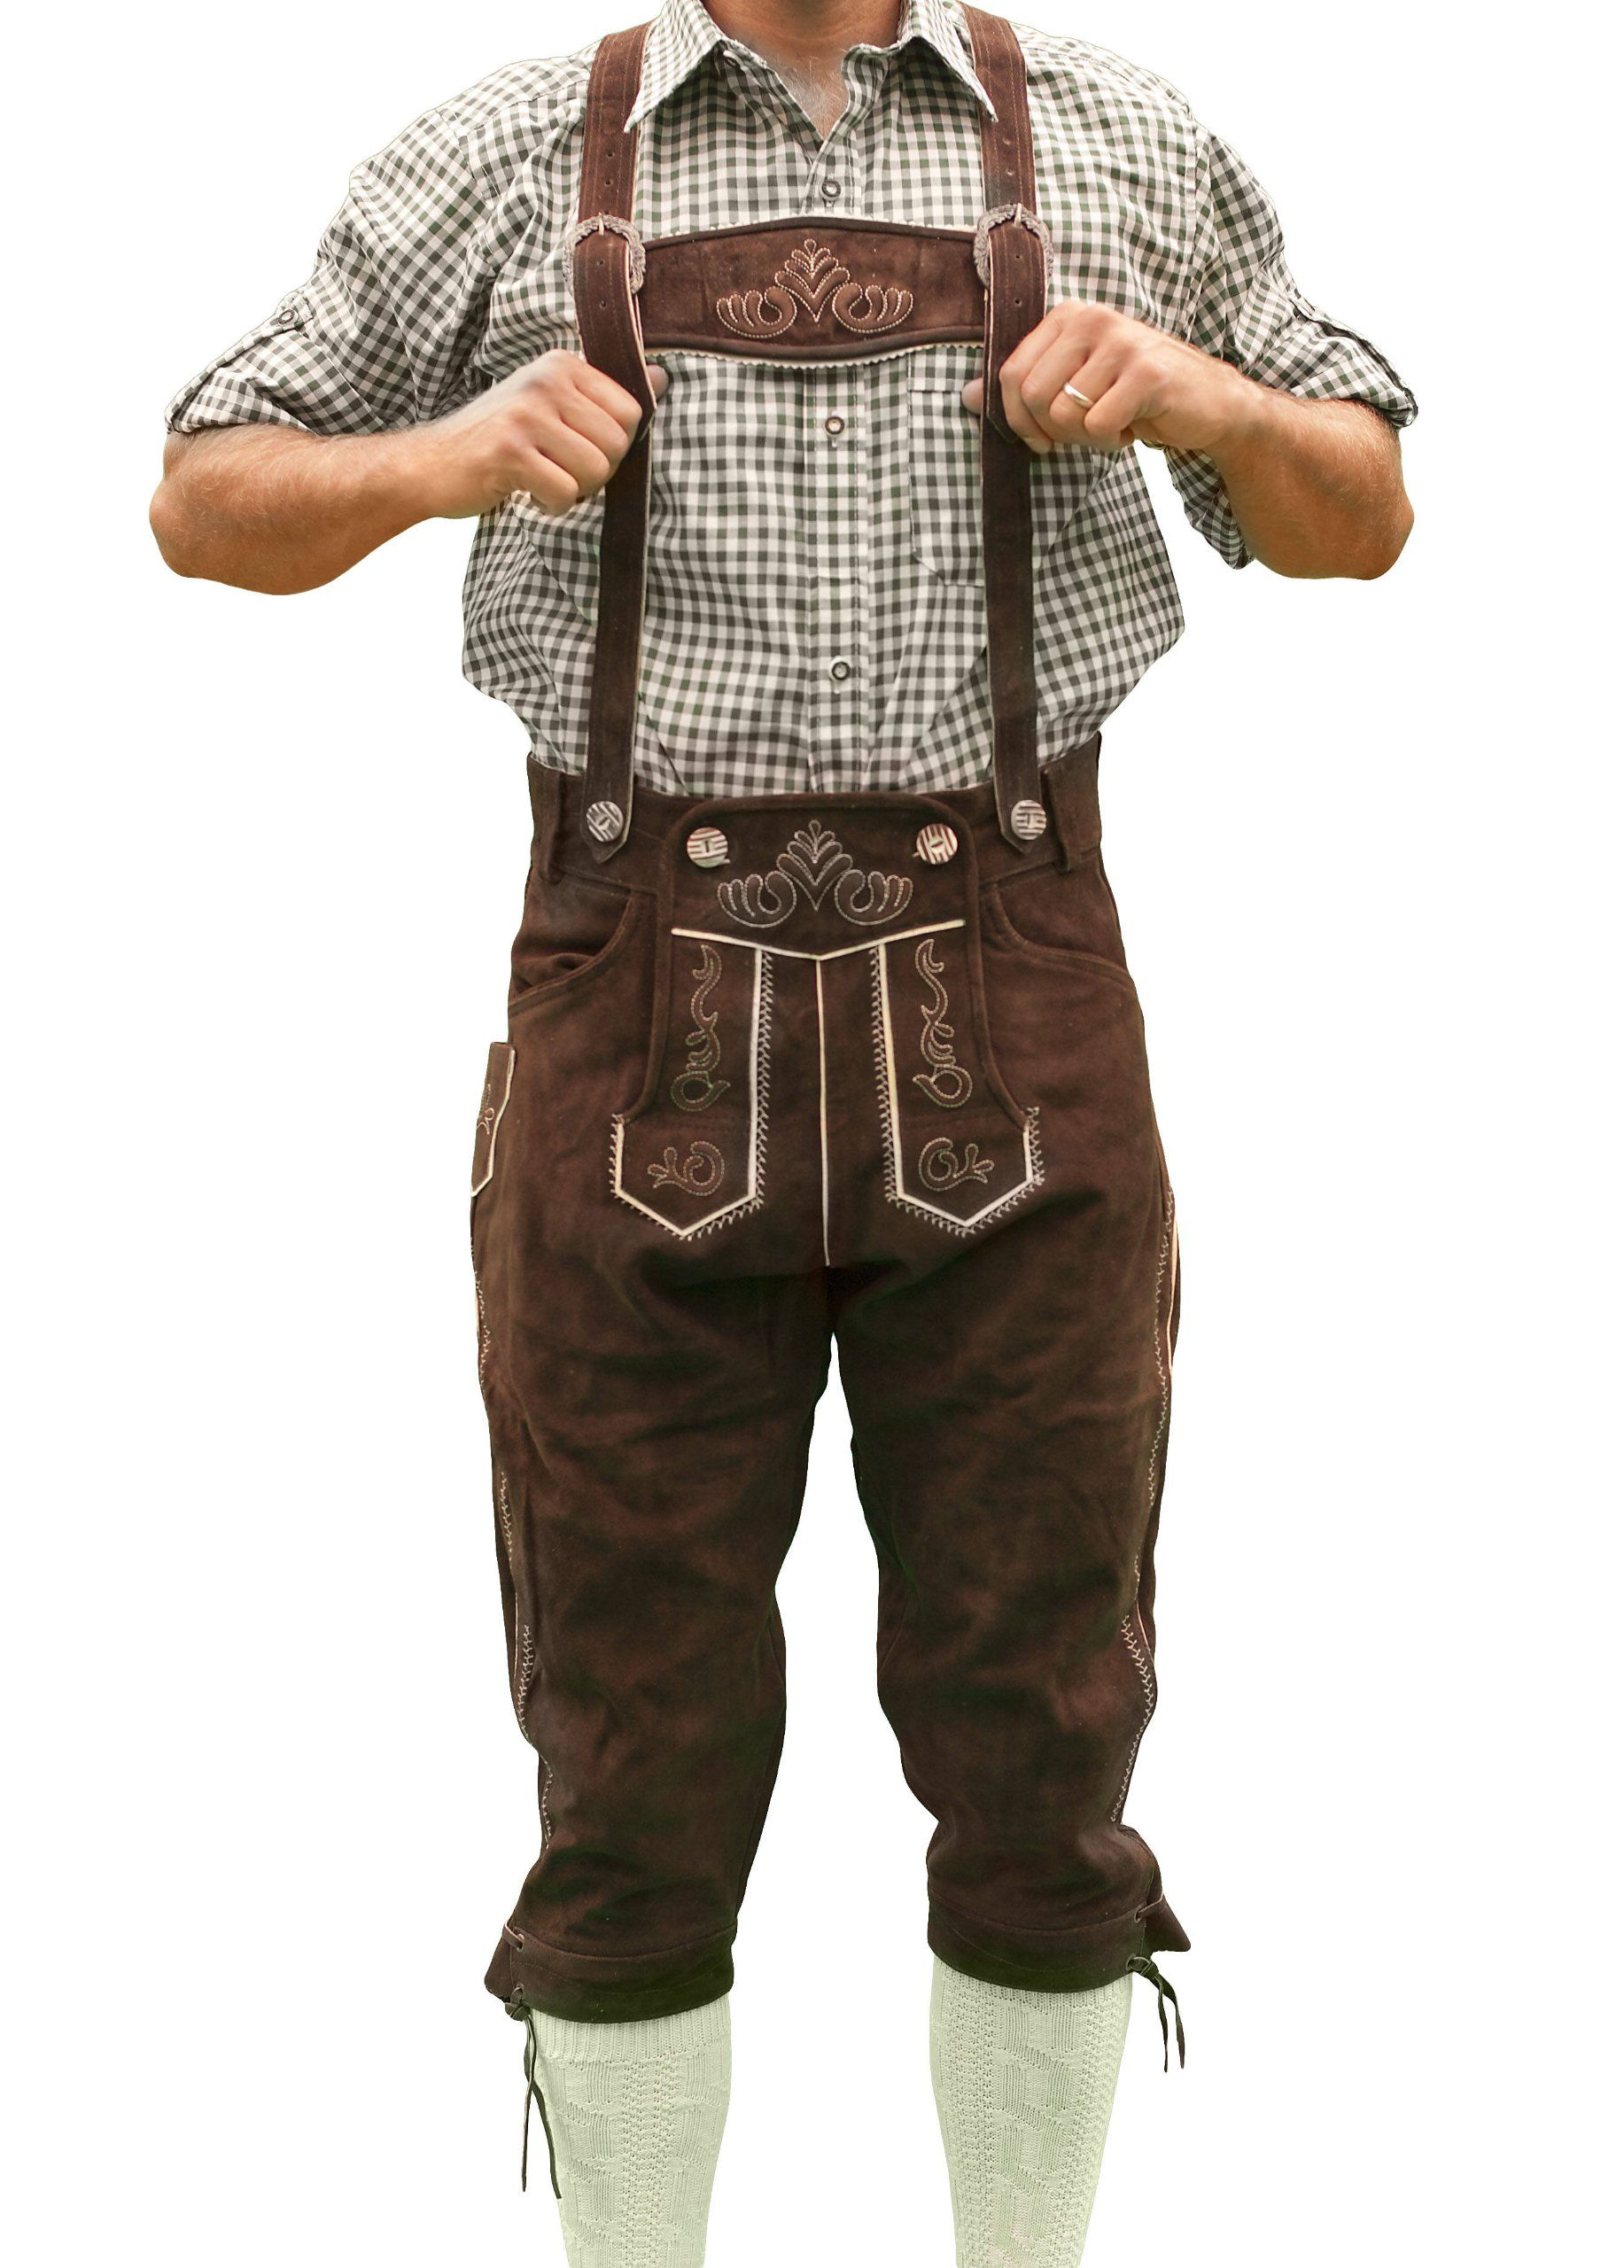 NEW MENS BAVARIAN LEDERHOSEN BLACK AUSTRIA OKTOBERFEST LEDERHOSEN ALL SIZES